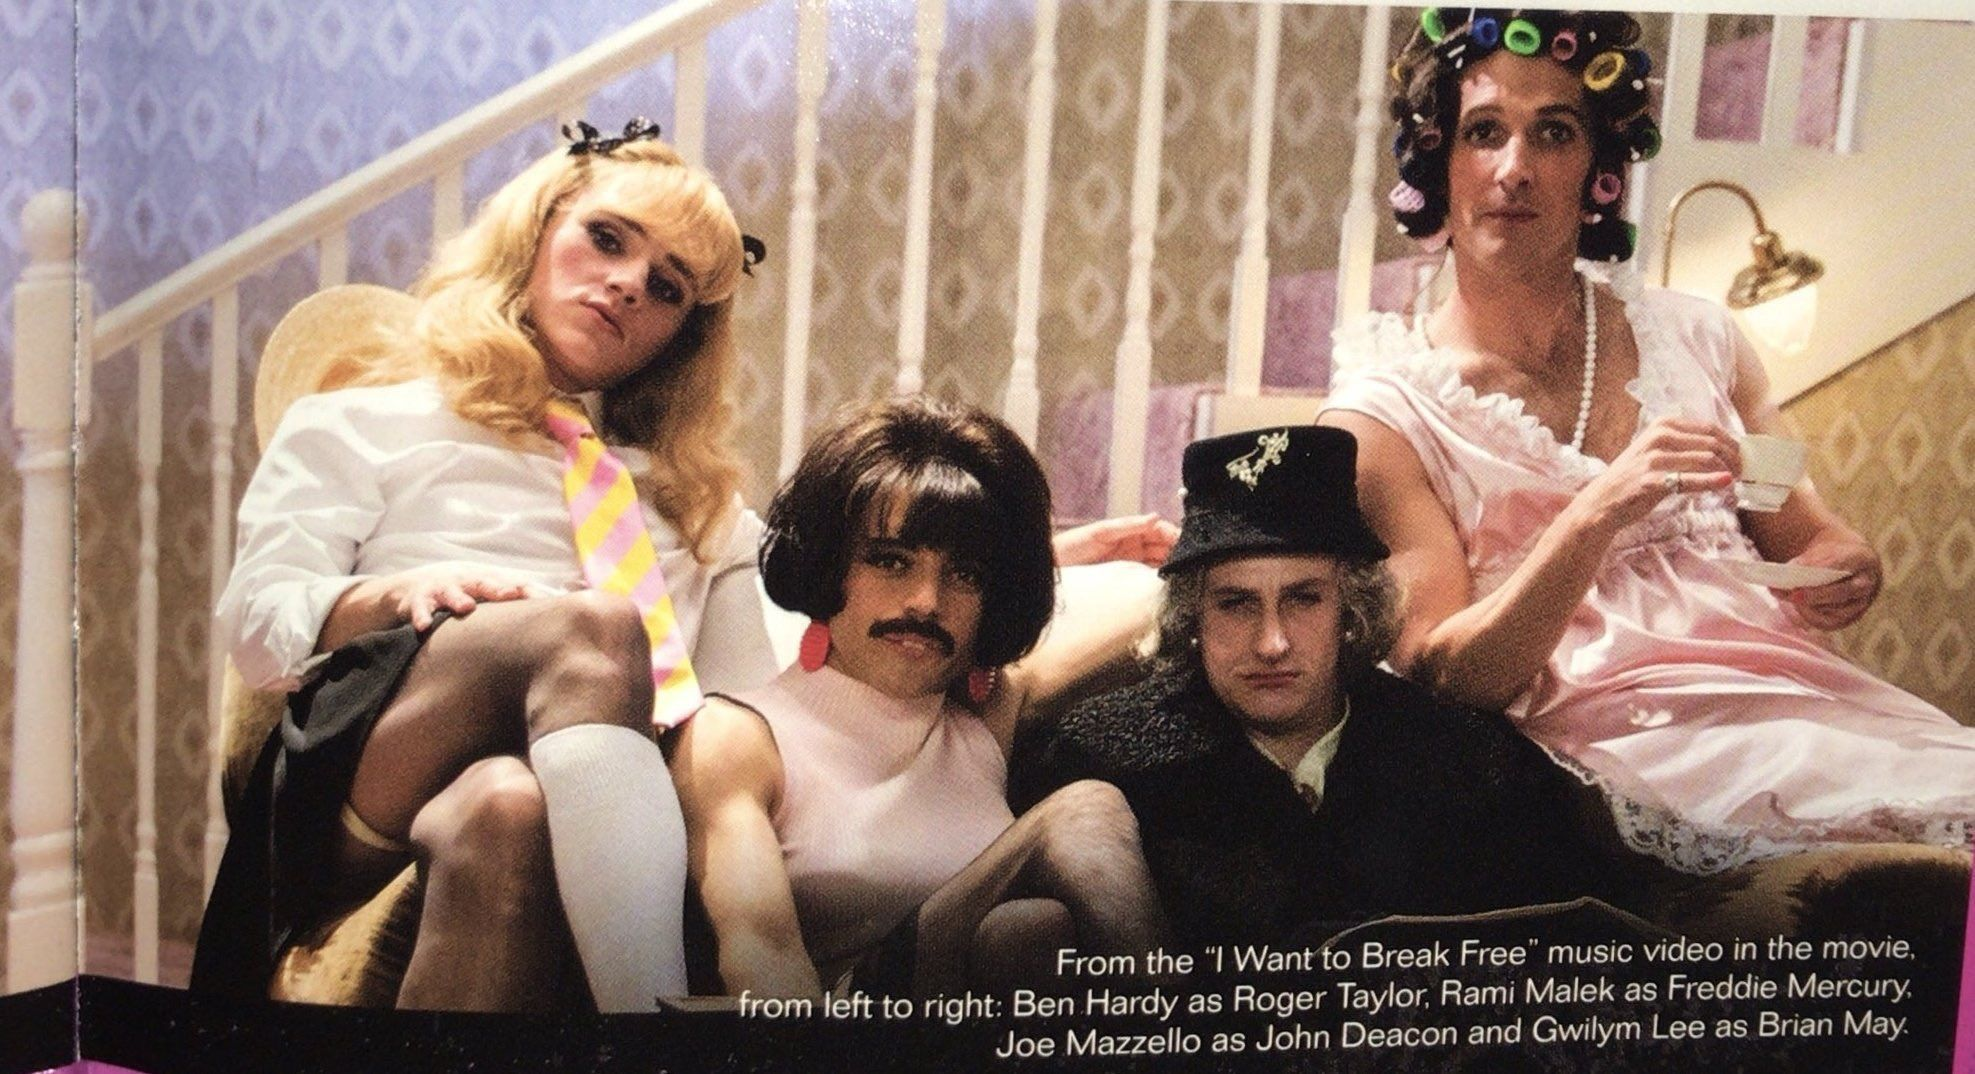 I want full video of IWTBF RIGHT NOW   Queen/BoRhap cast in